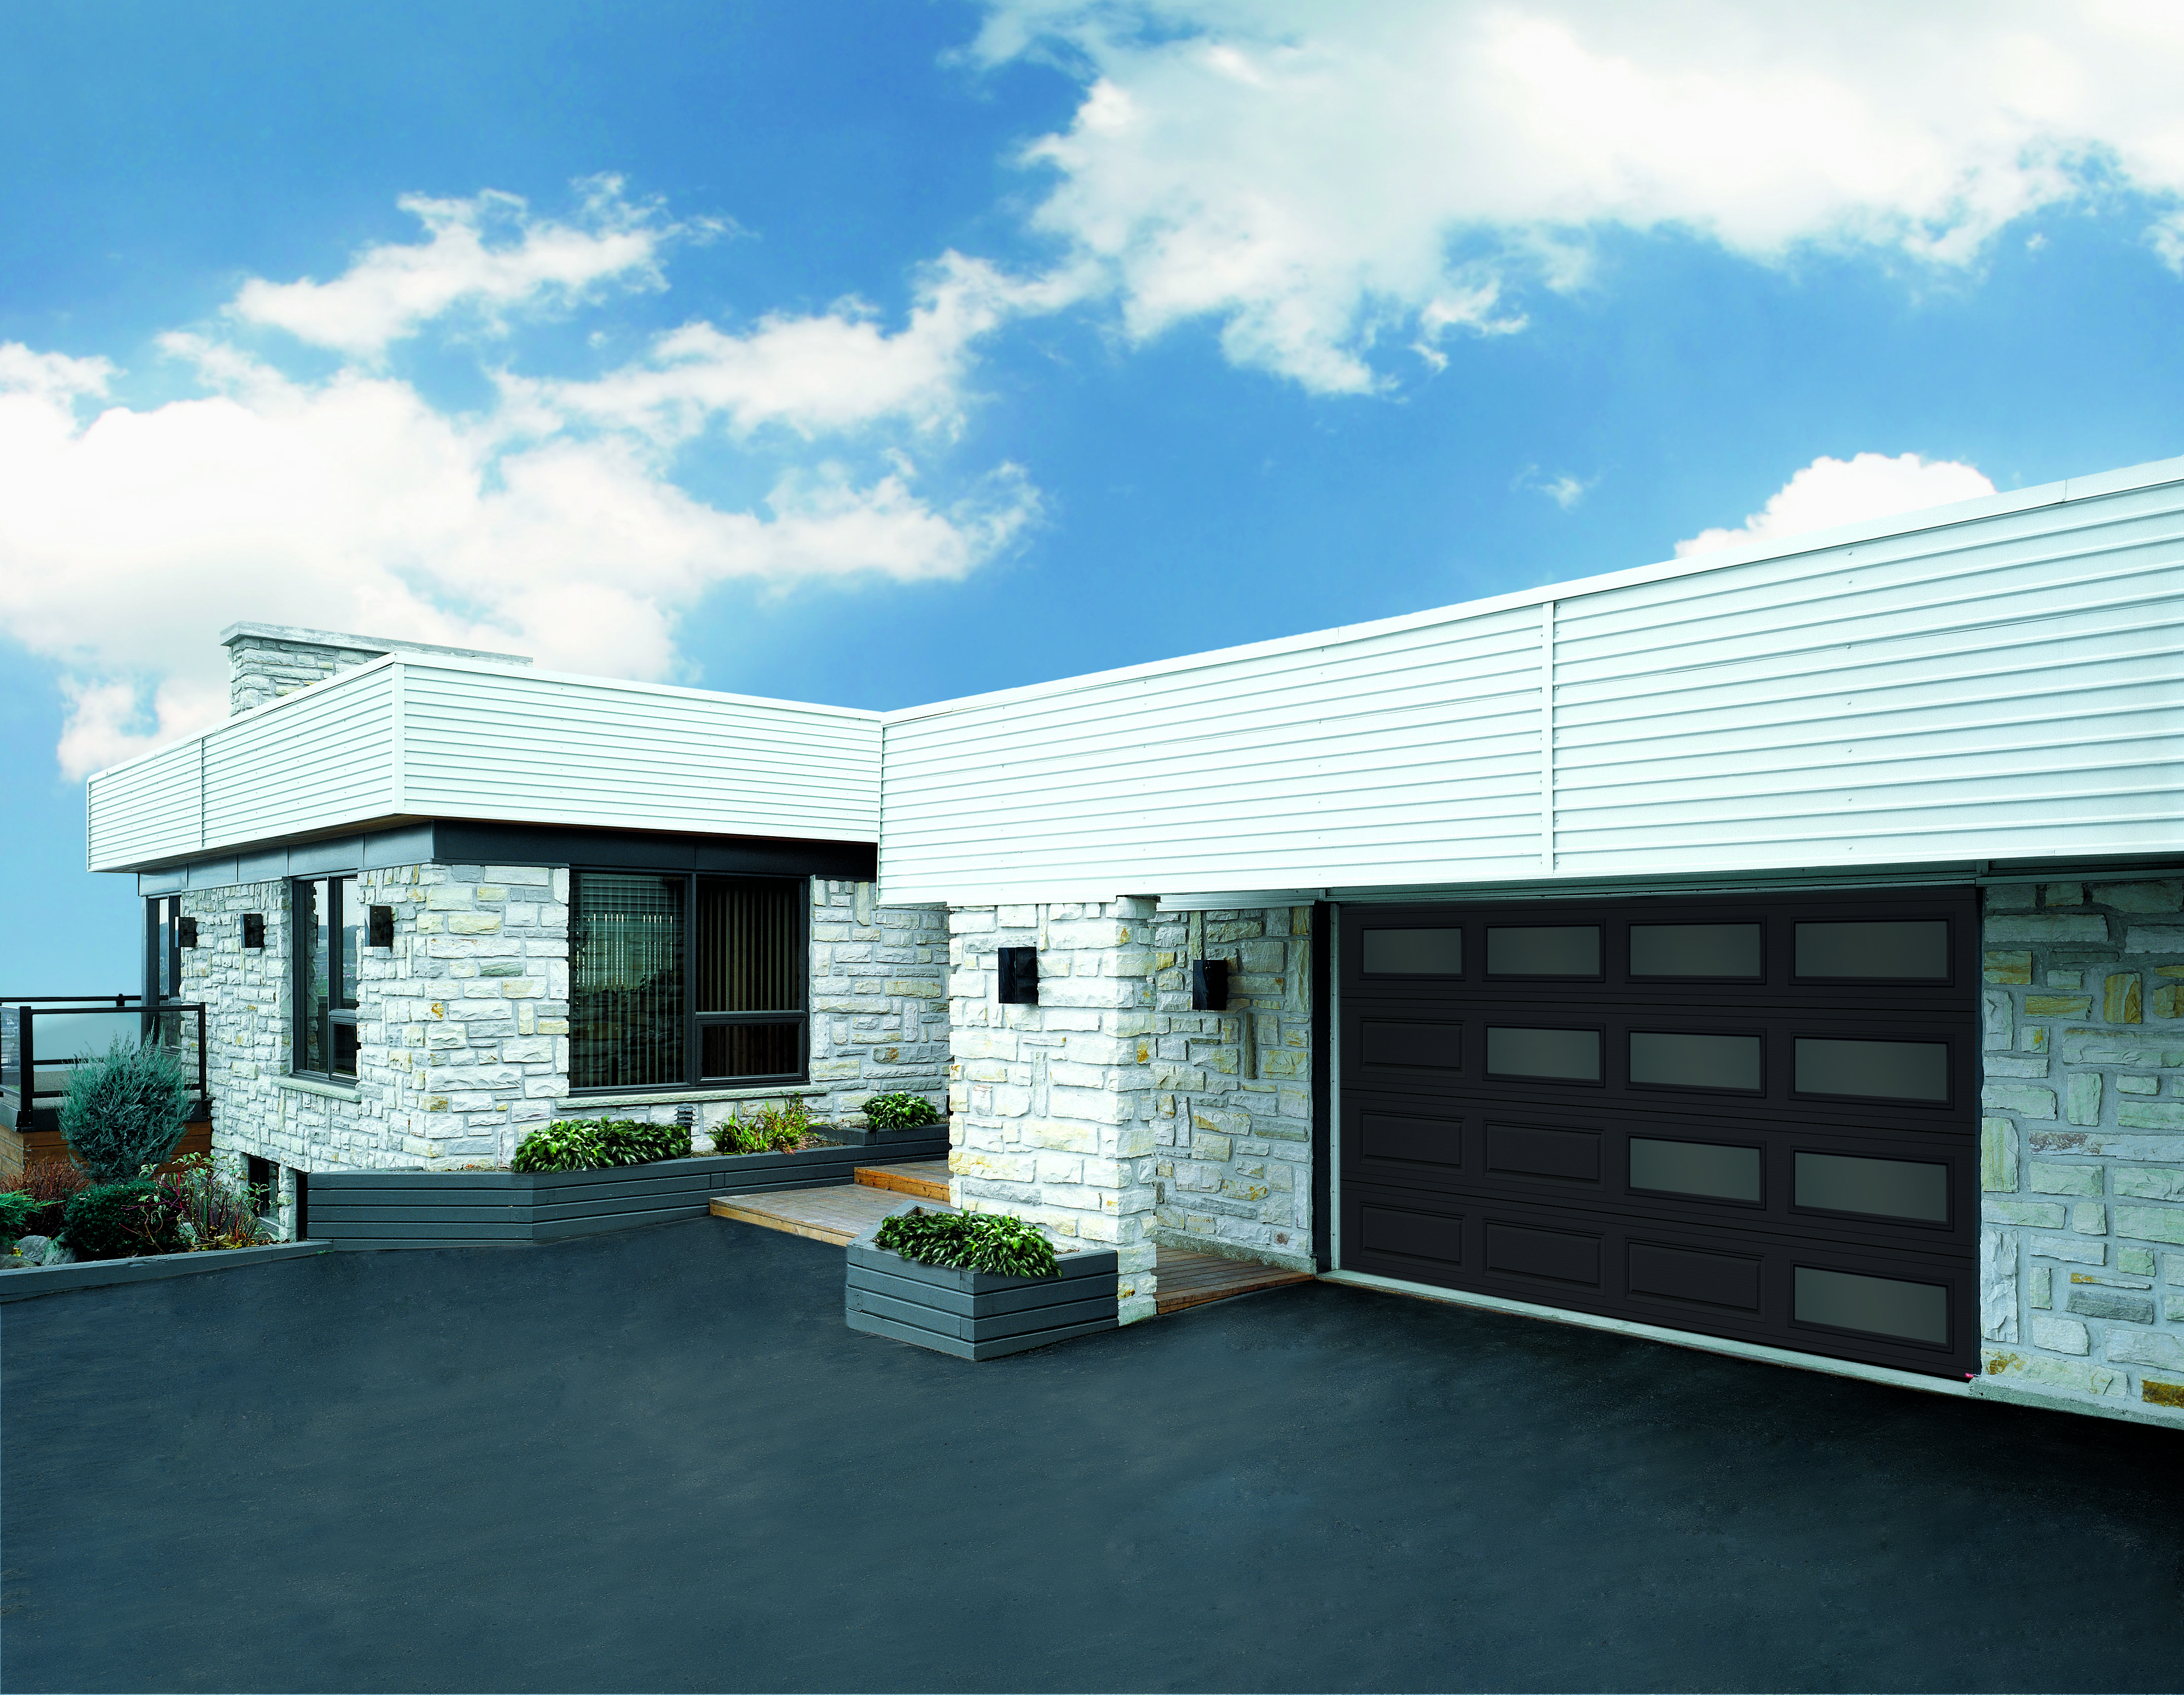 Garage Door Model Standard XL Perspective Get a FREE QUOTE